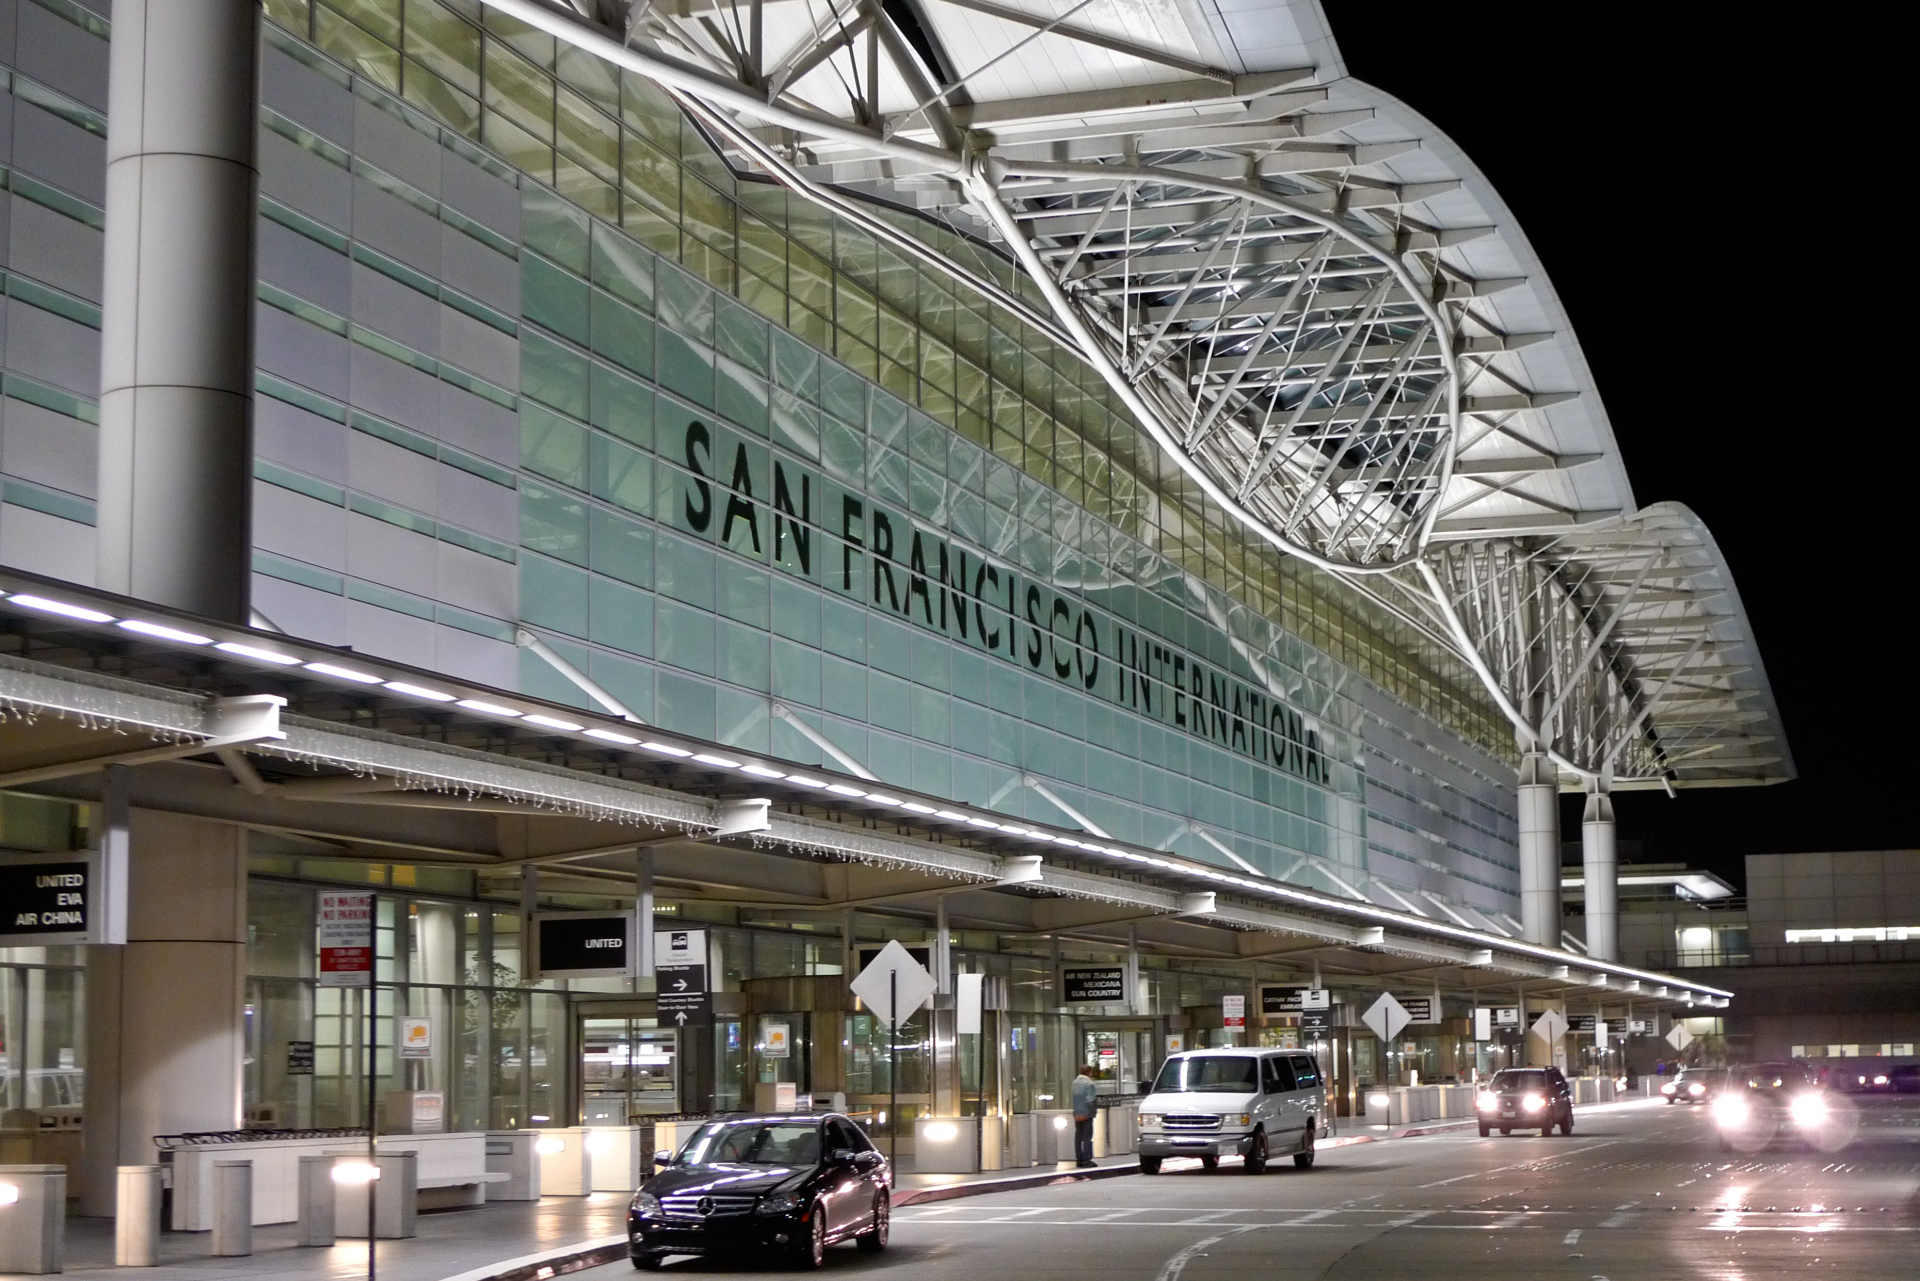 Limo service airport transportation San Francisco International